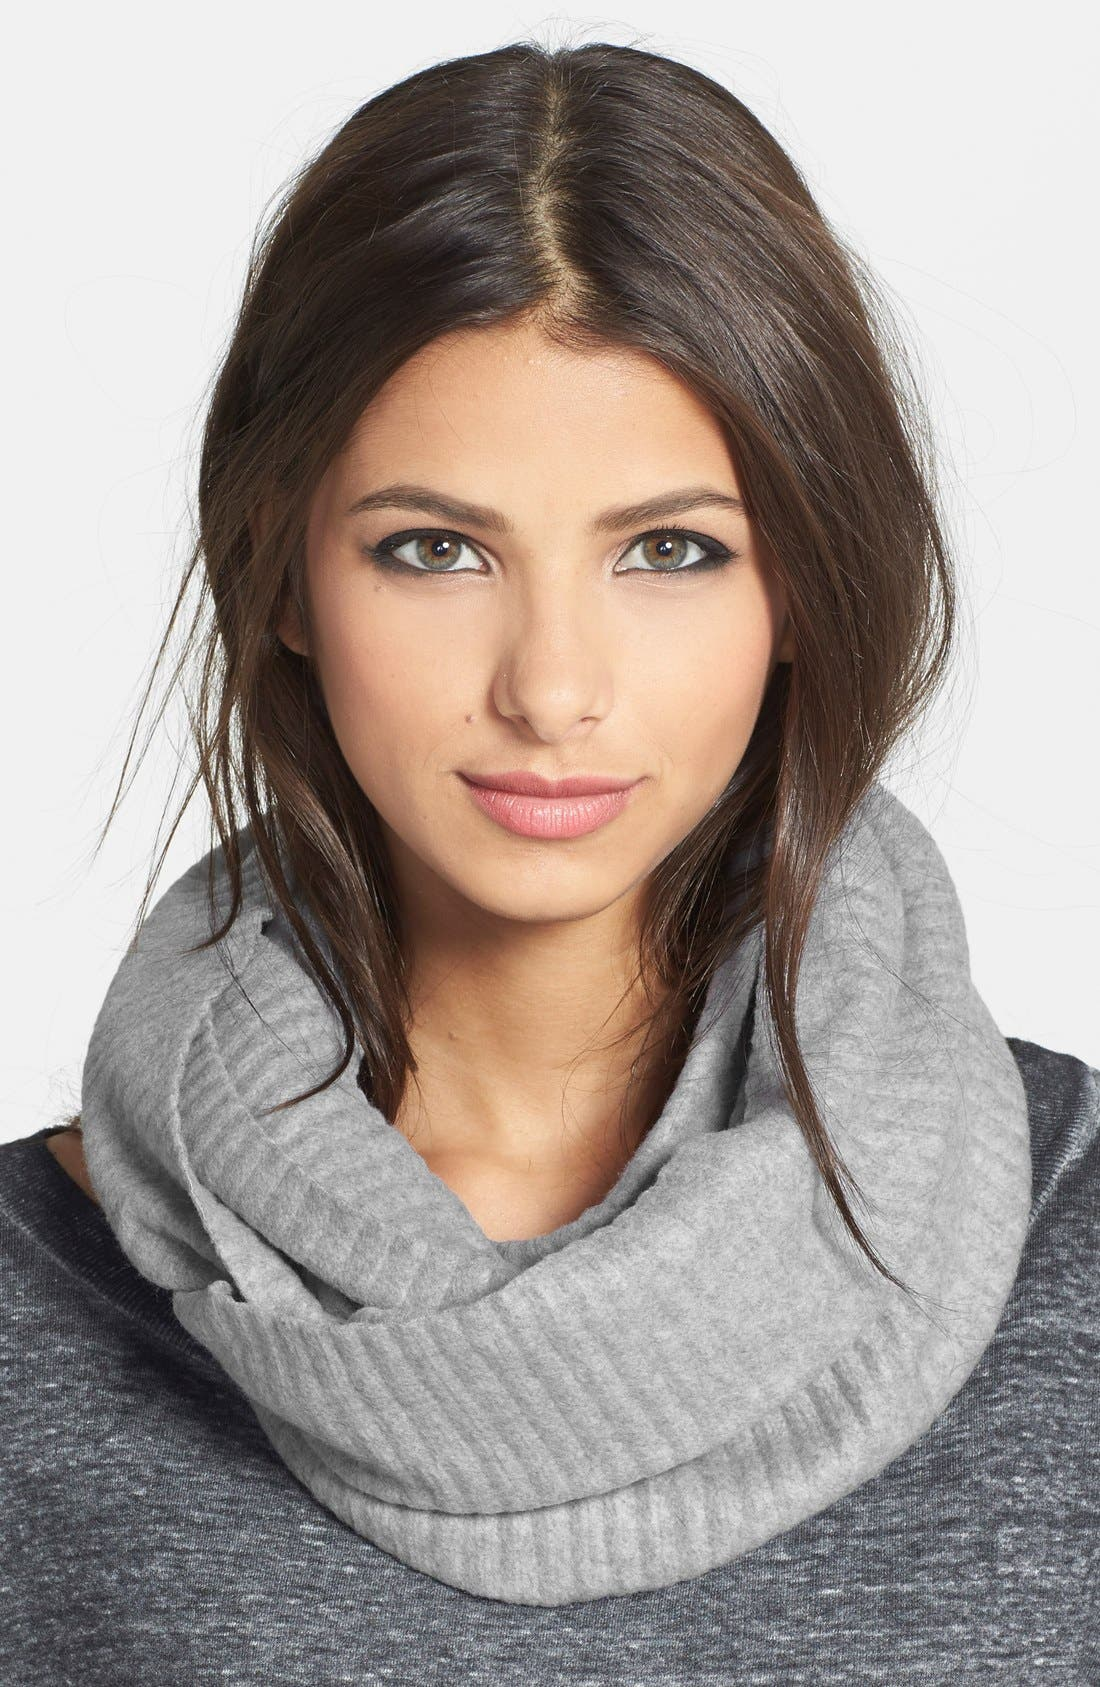 Alternate Image 1 Selected - Collection XIIX 'Super Pleated' Infinity Scarf